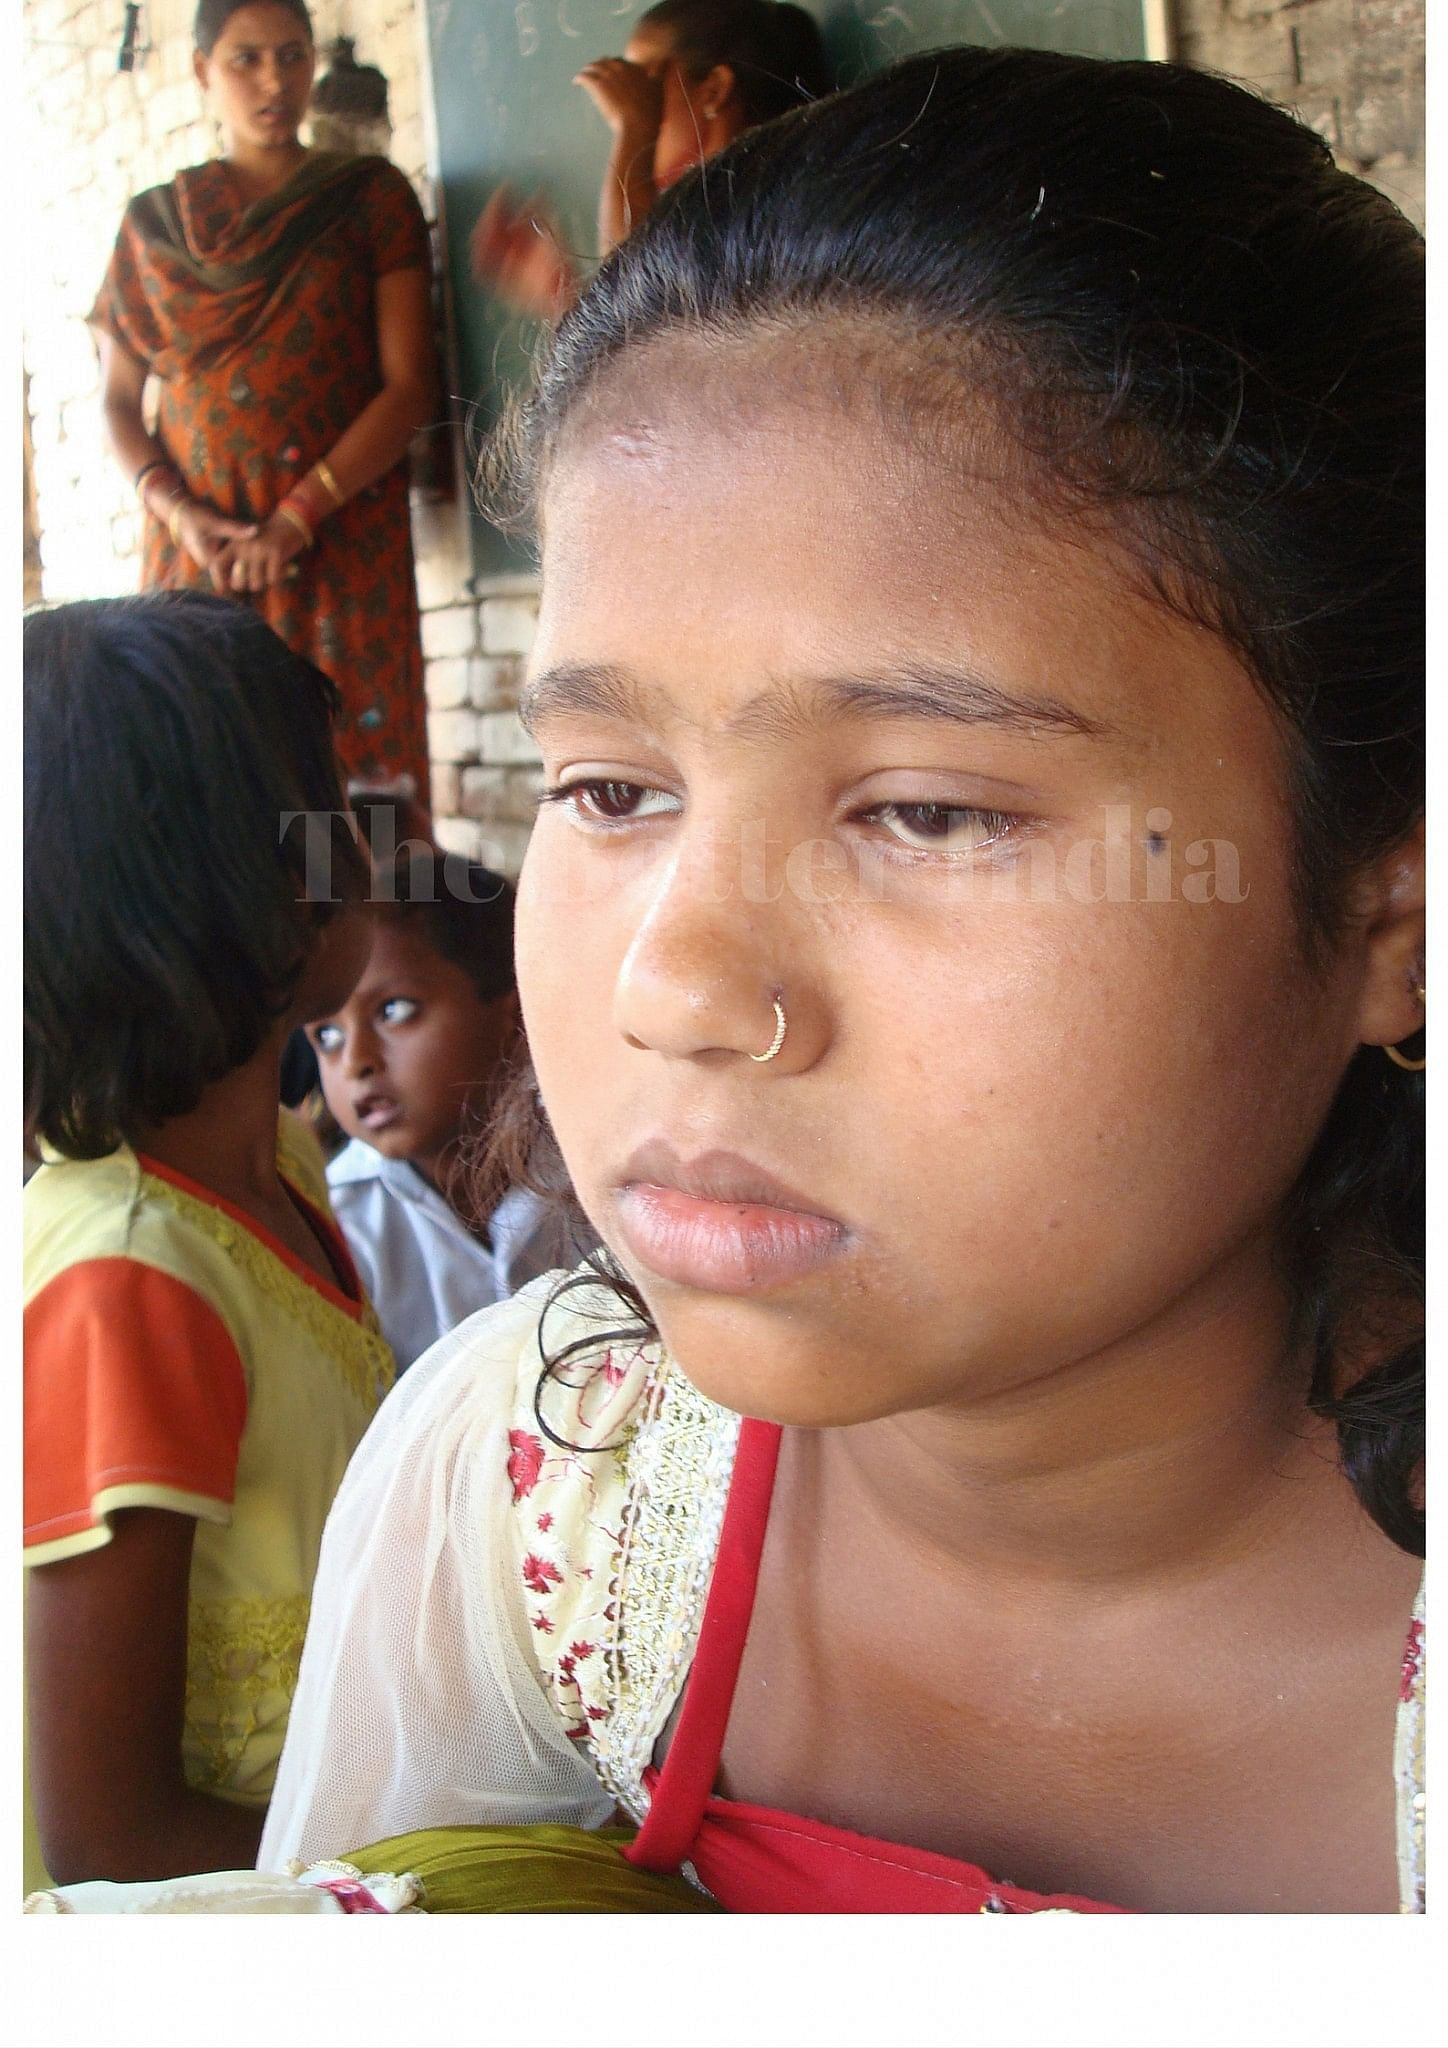 Eight-year-old Nita after her eye operation, that happened thanks to Gudiya's school. (Credit: Anjali Singh\WFS)